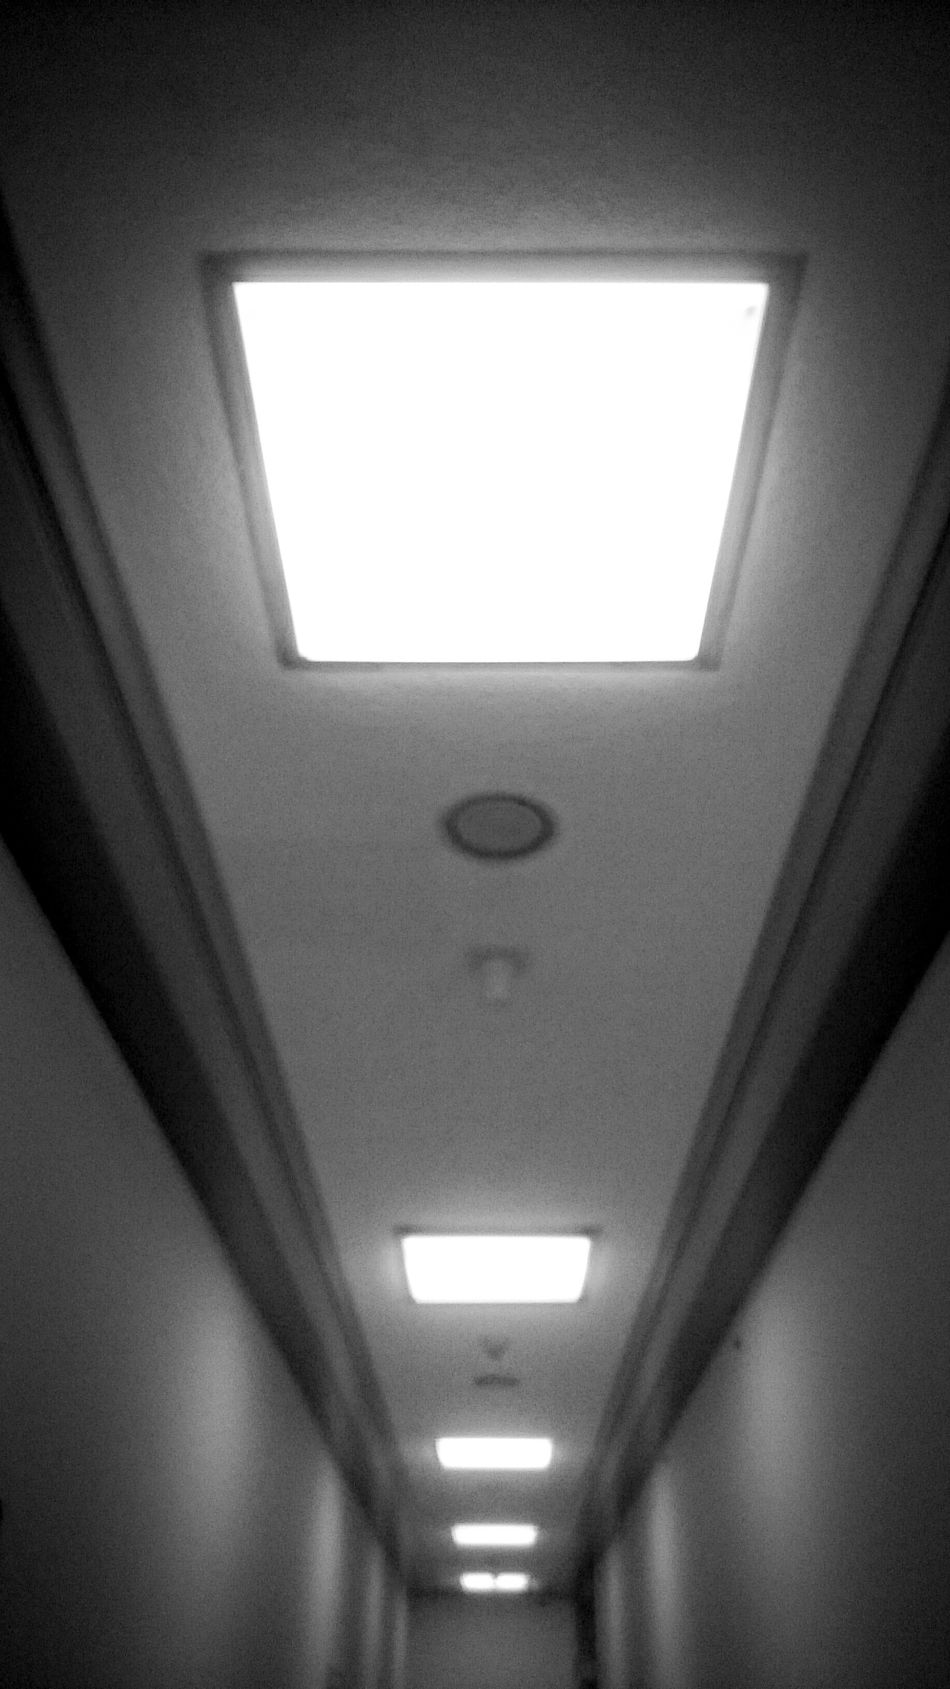 Hallway... Randomshot Hallway Lights Walls Black & White Black And White Photography Justashot Quick Shot B&w Architecture Building Interior Old Building  Inanimate Walking Around What I See Afternoonshot Blackandwhite Buildingphotography Lights Illuminated Hallway